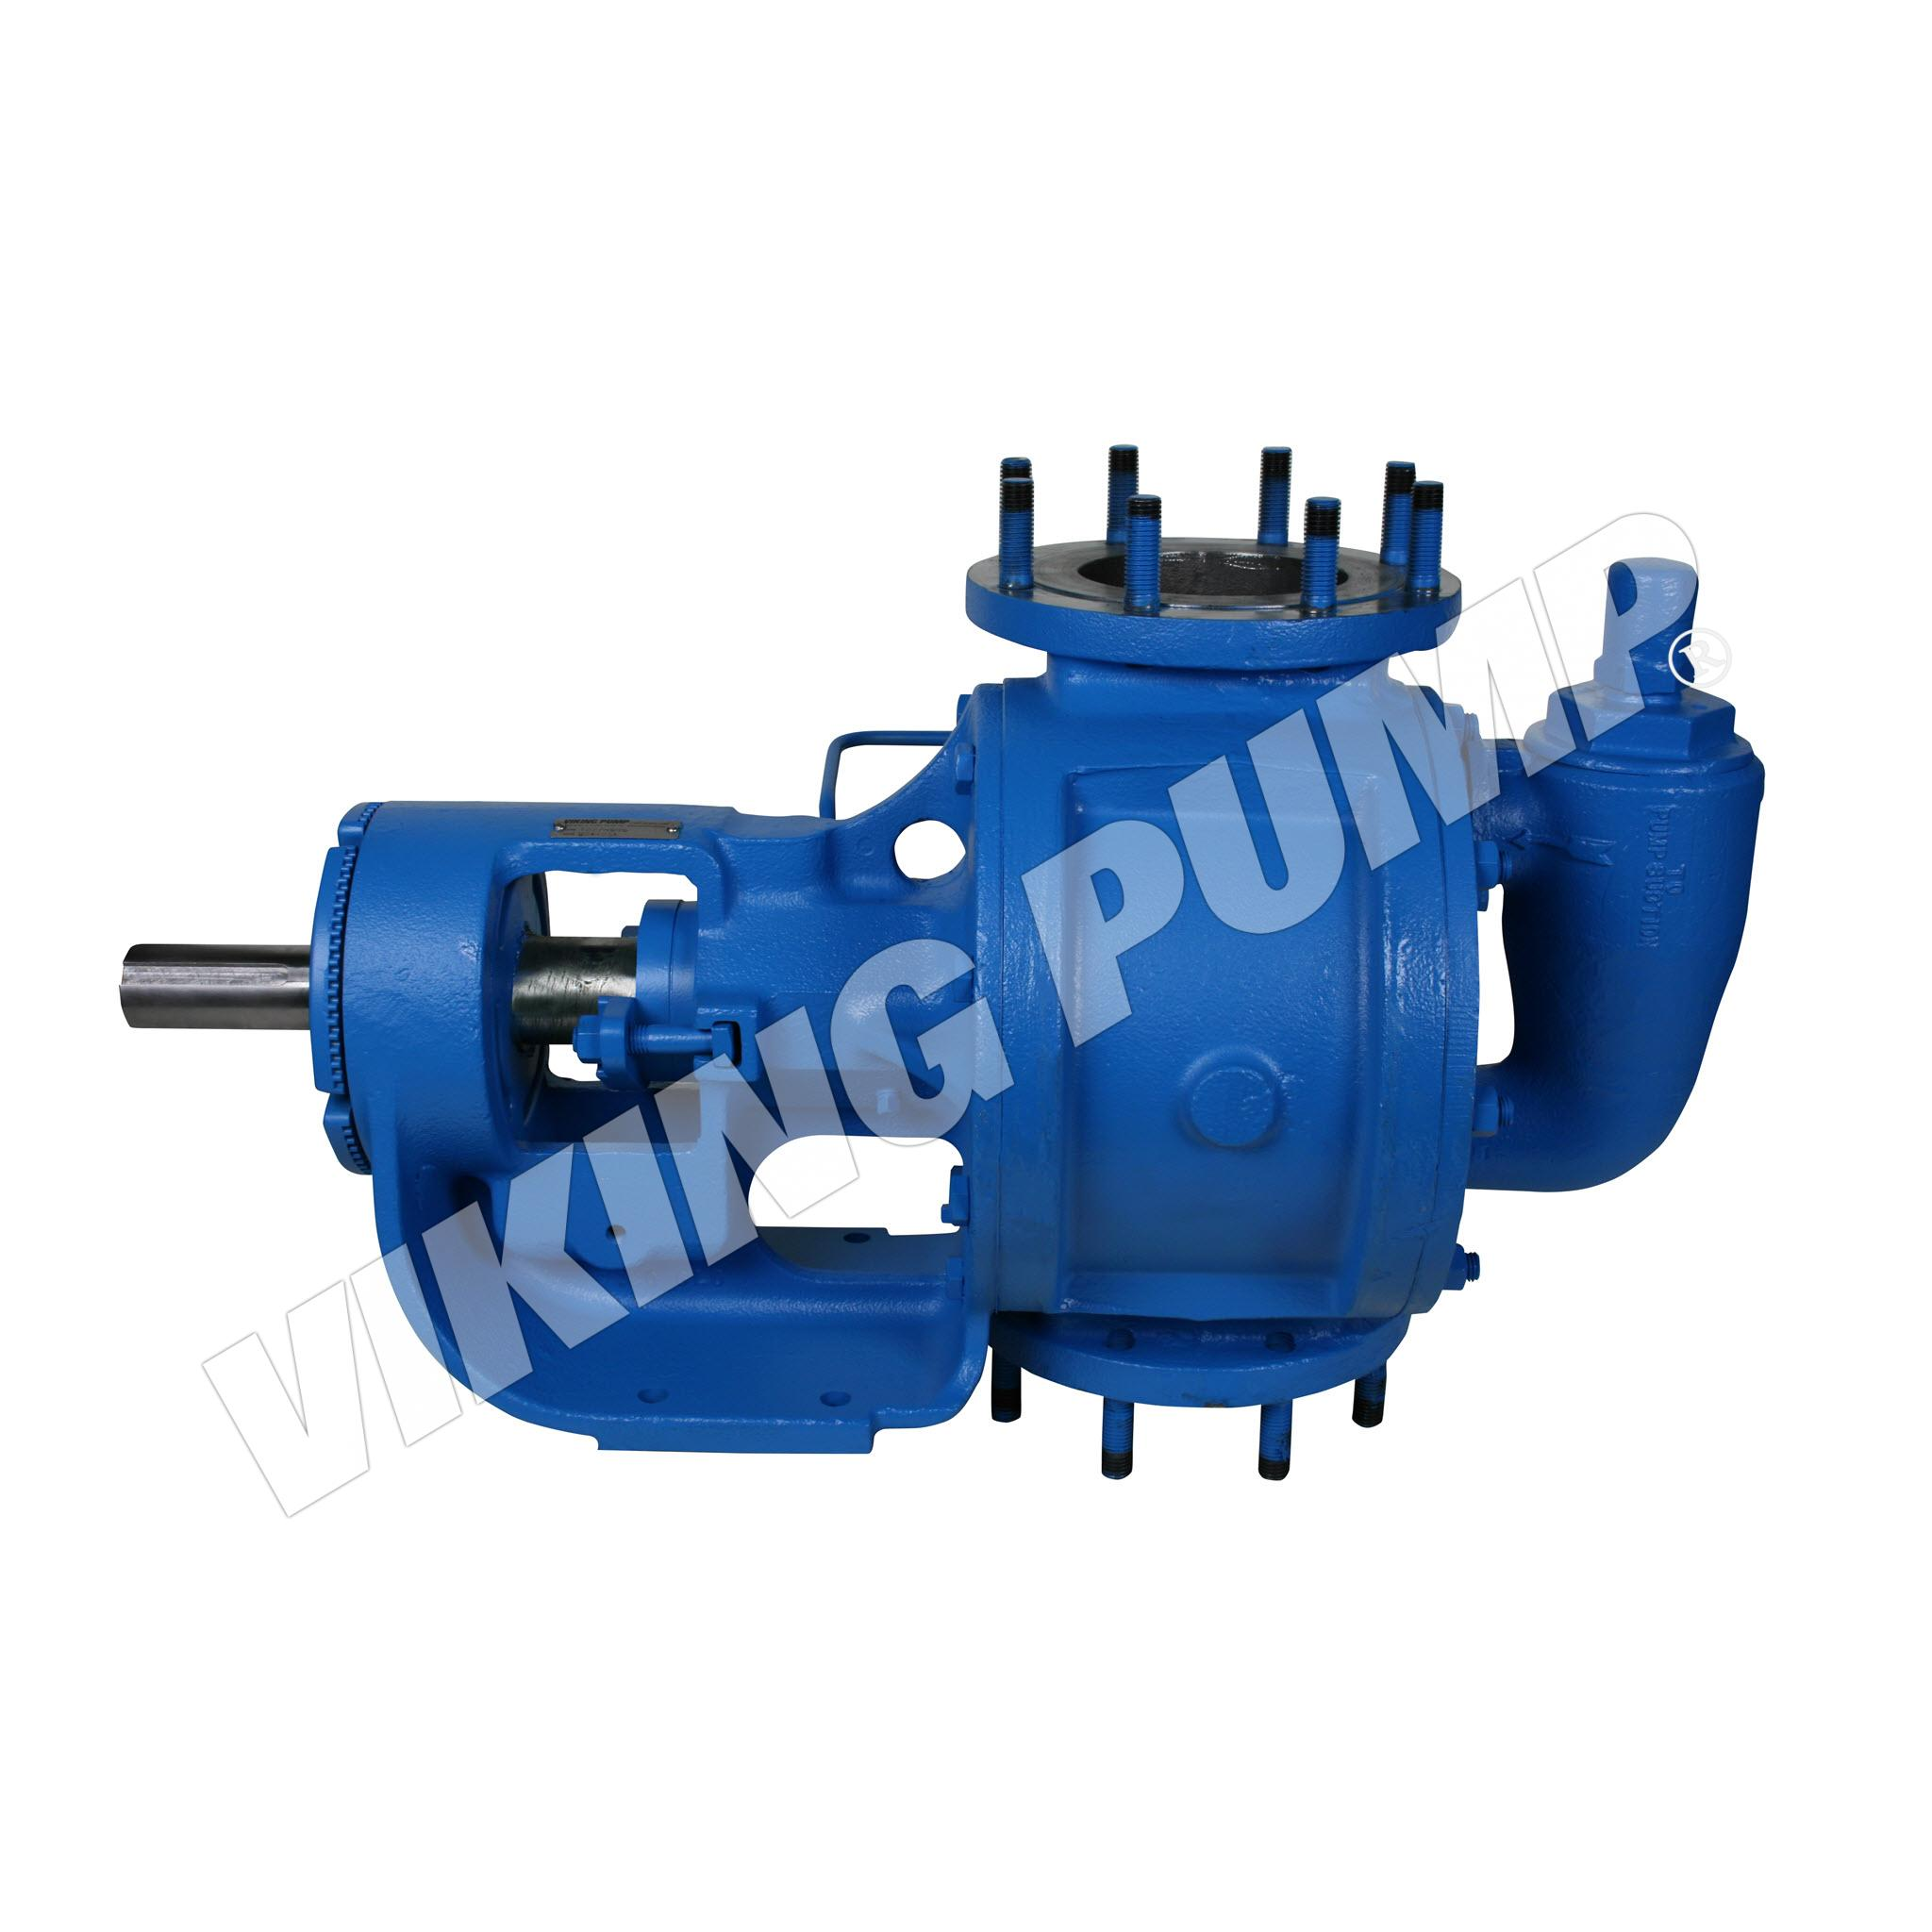 Model QS4123A, Foot Mounted,Mechanical Seal, Vertical Ported, Relief Valve Pump